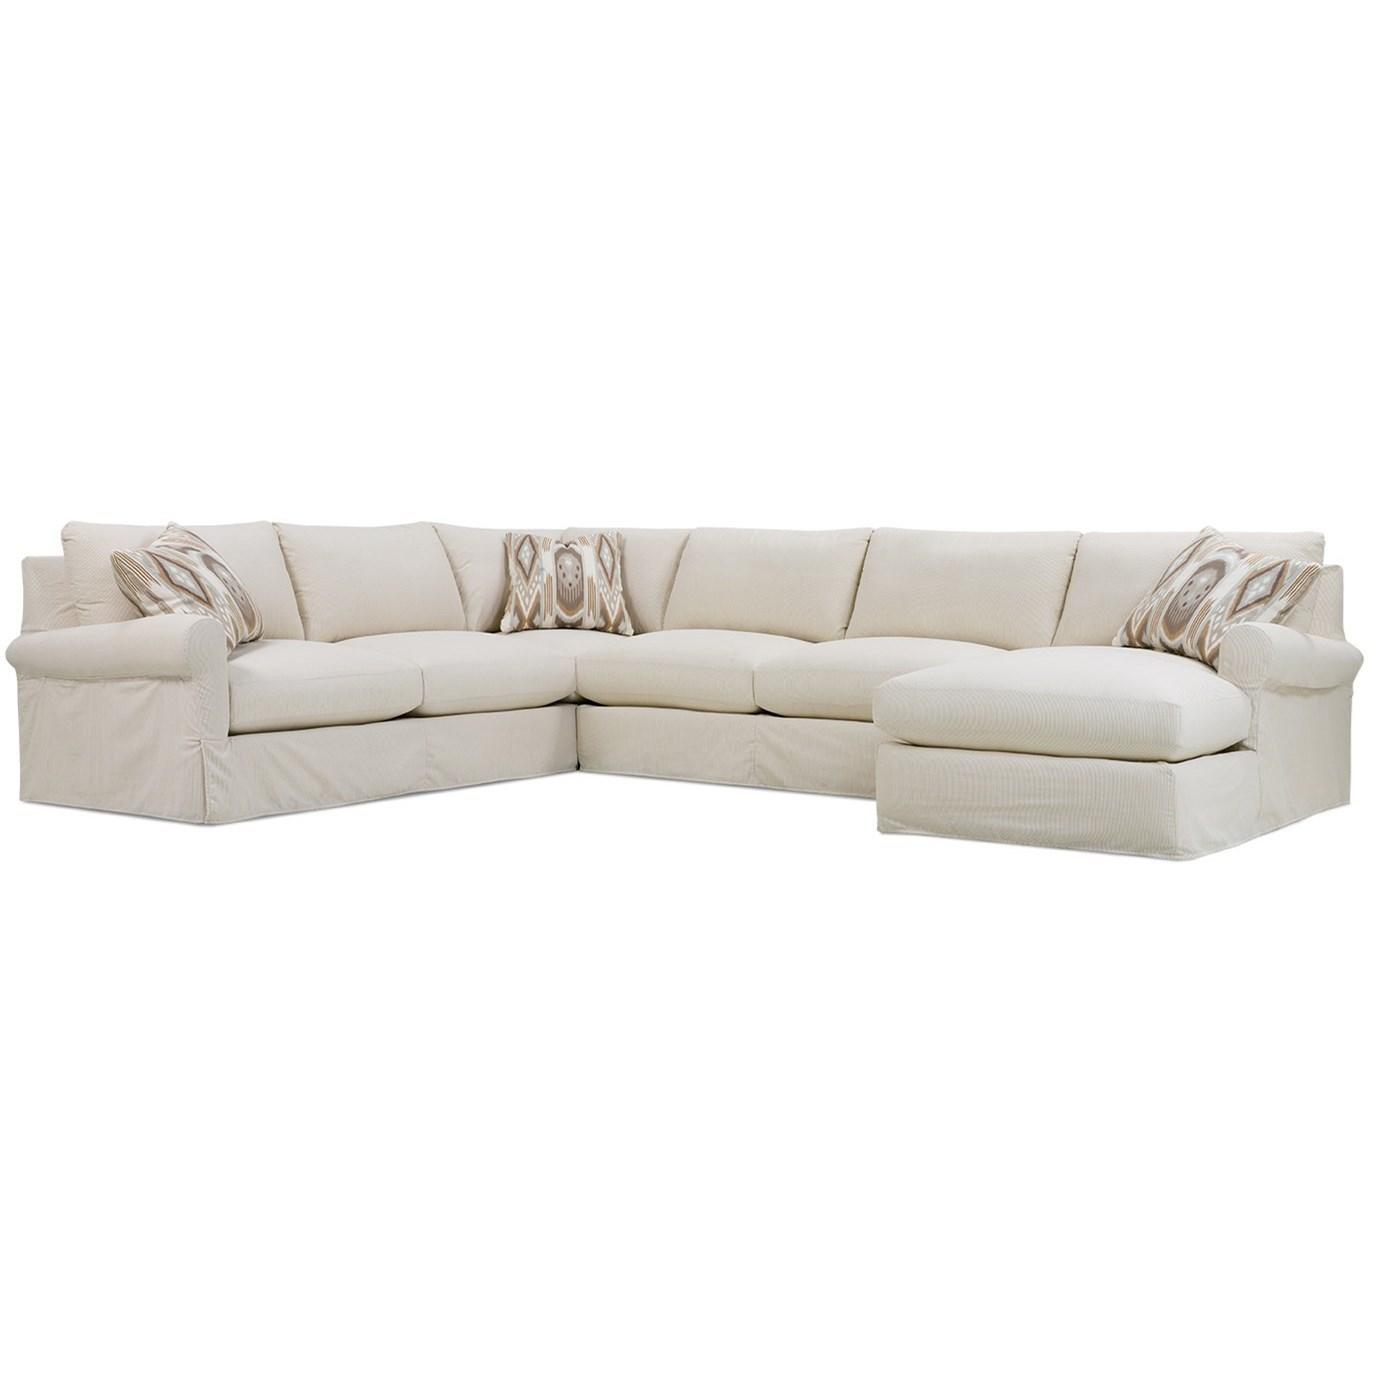 Aberdeen Slipcovered Sectional Sofa by Rowe at Baer's Furniture